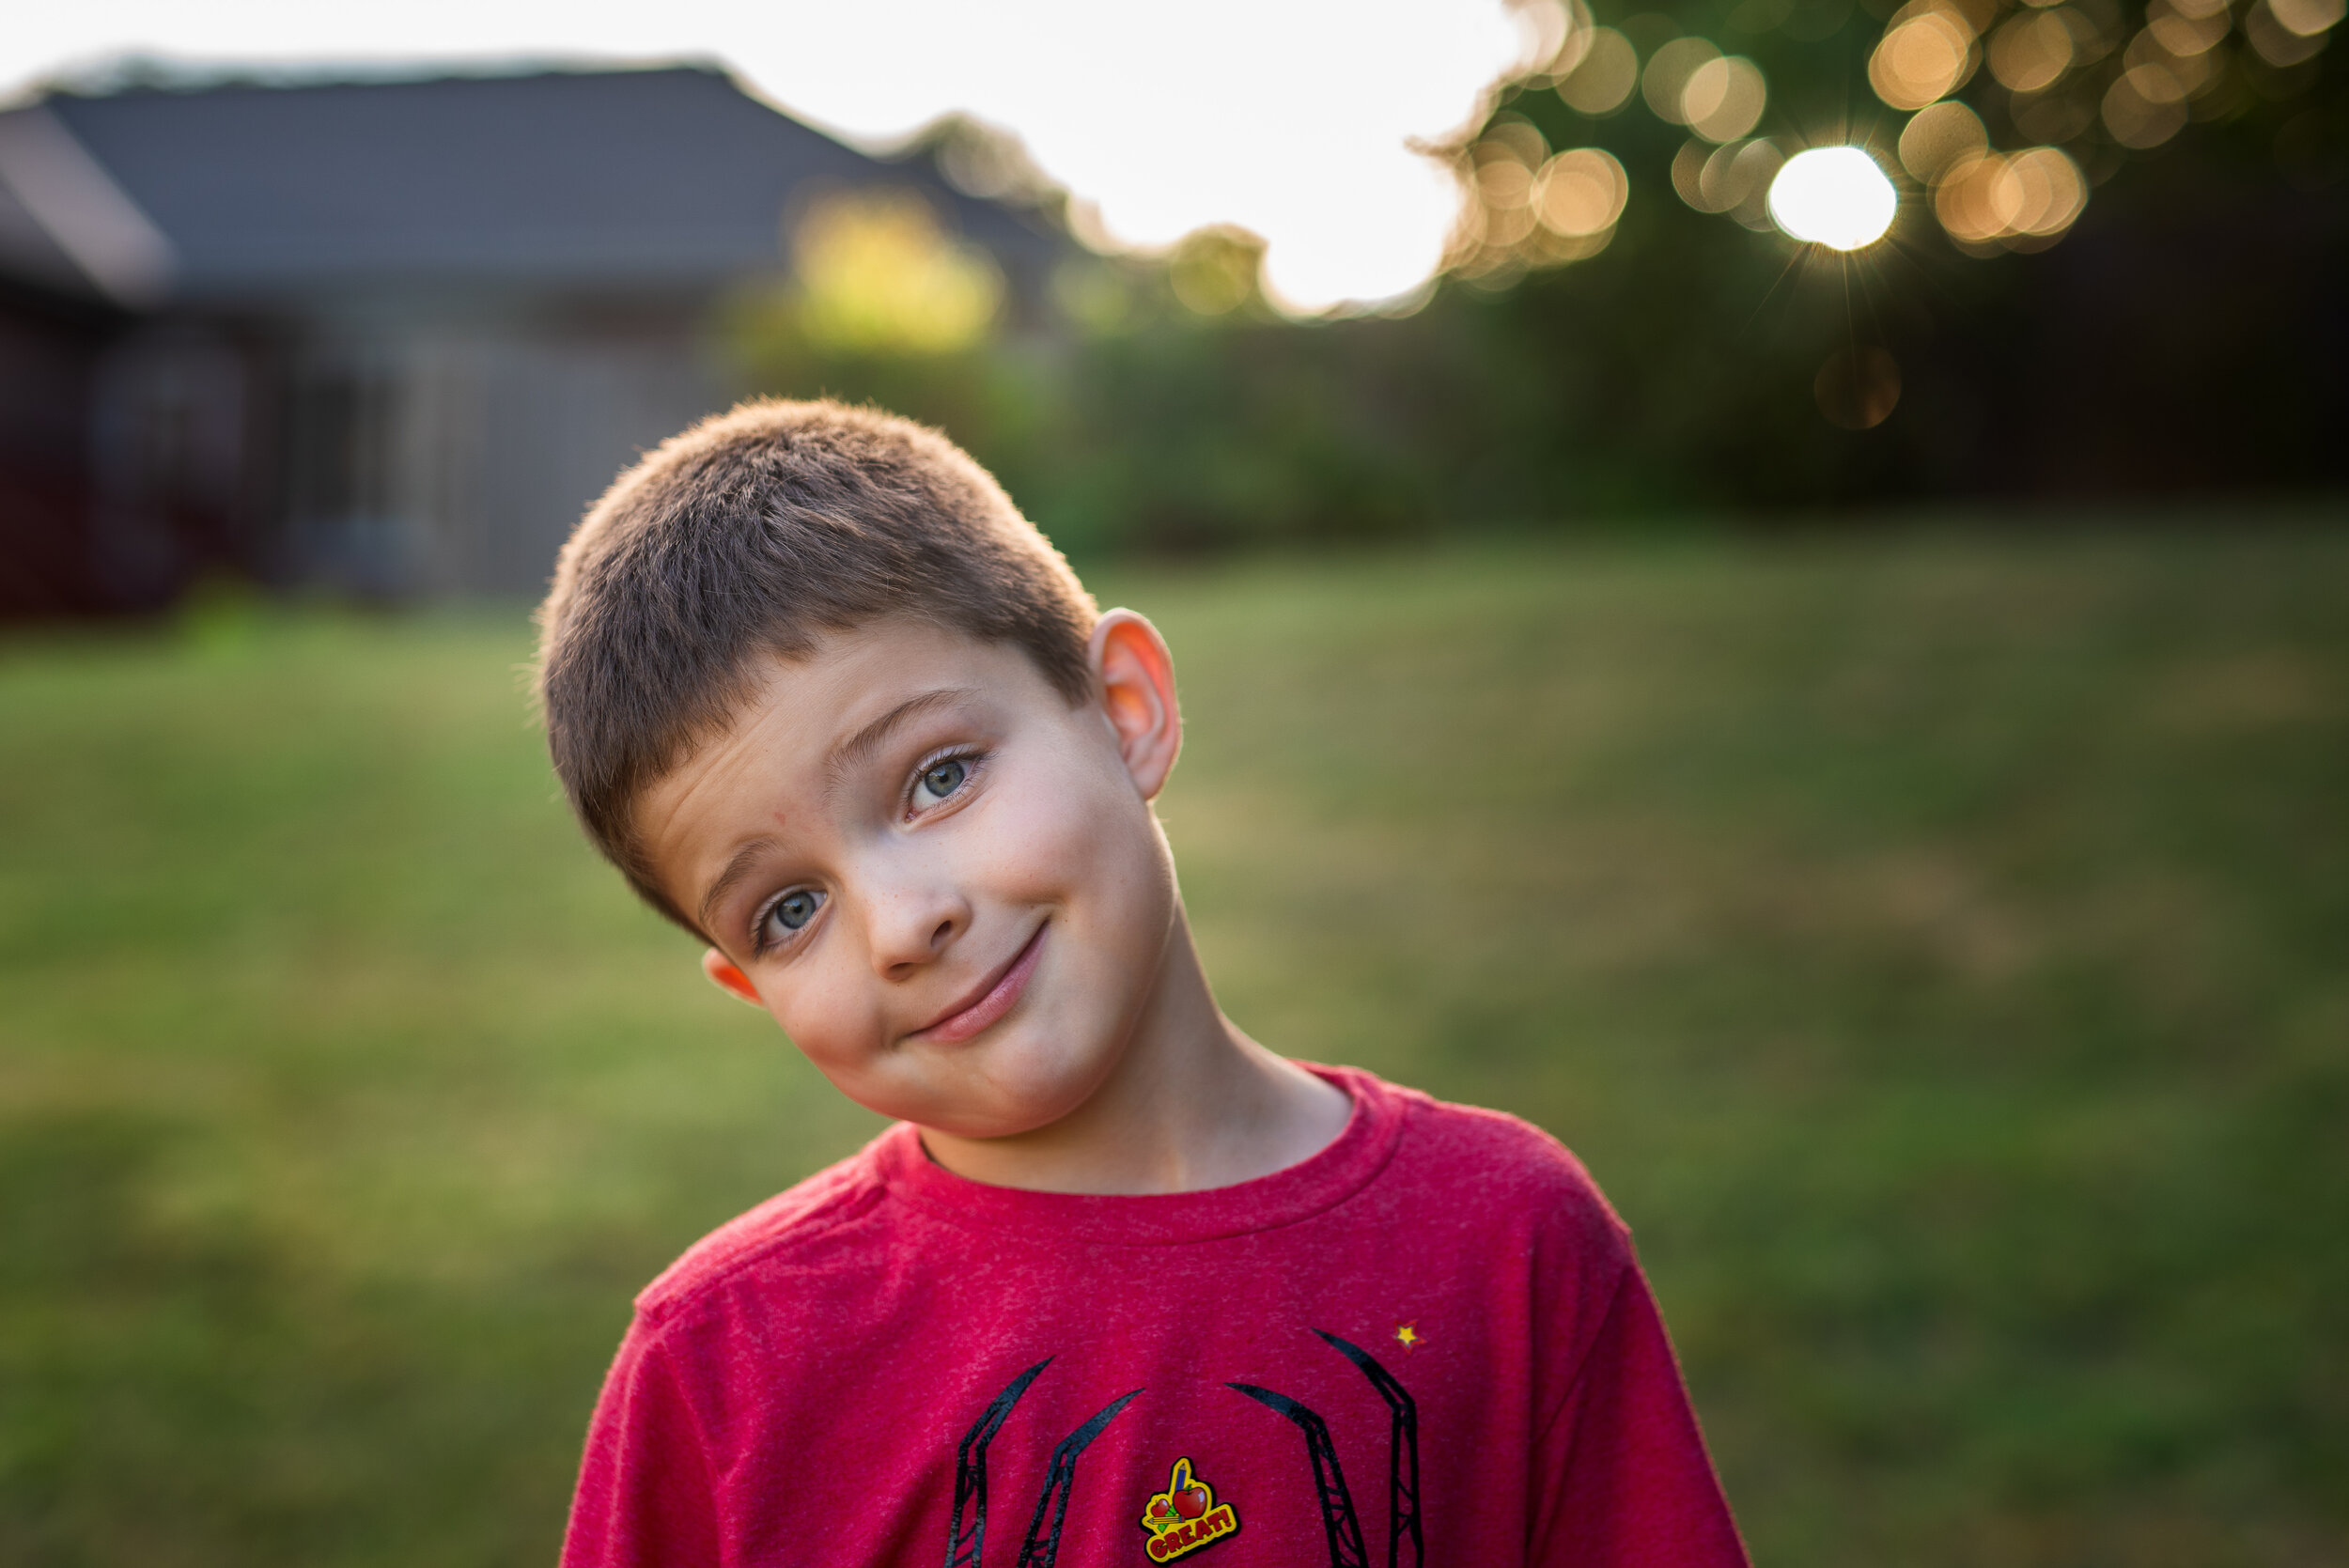 Portrait of a little boy with funny expression outdoors.